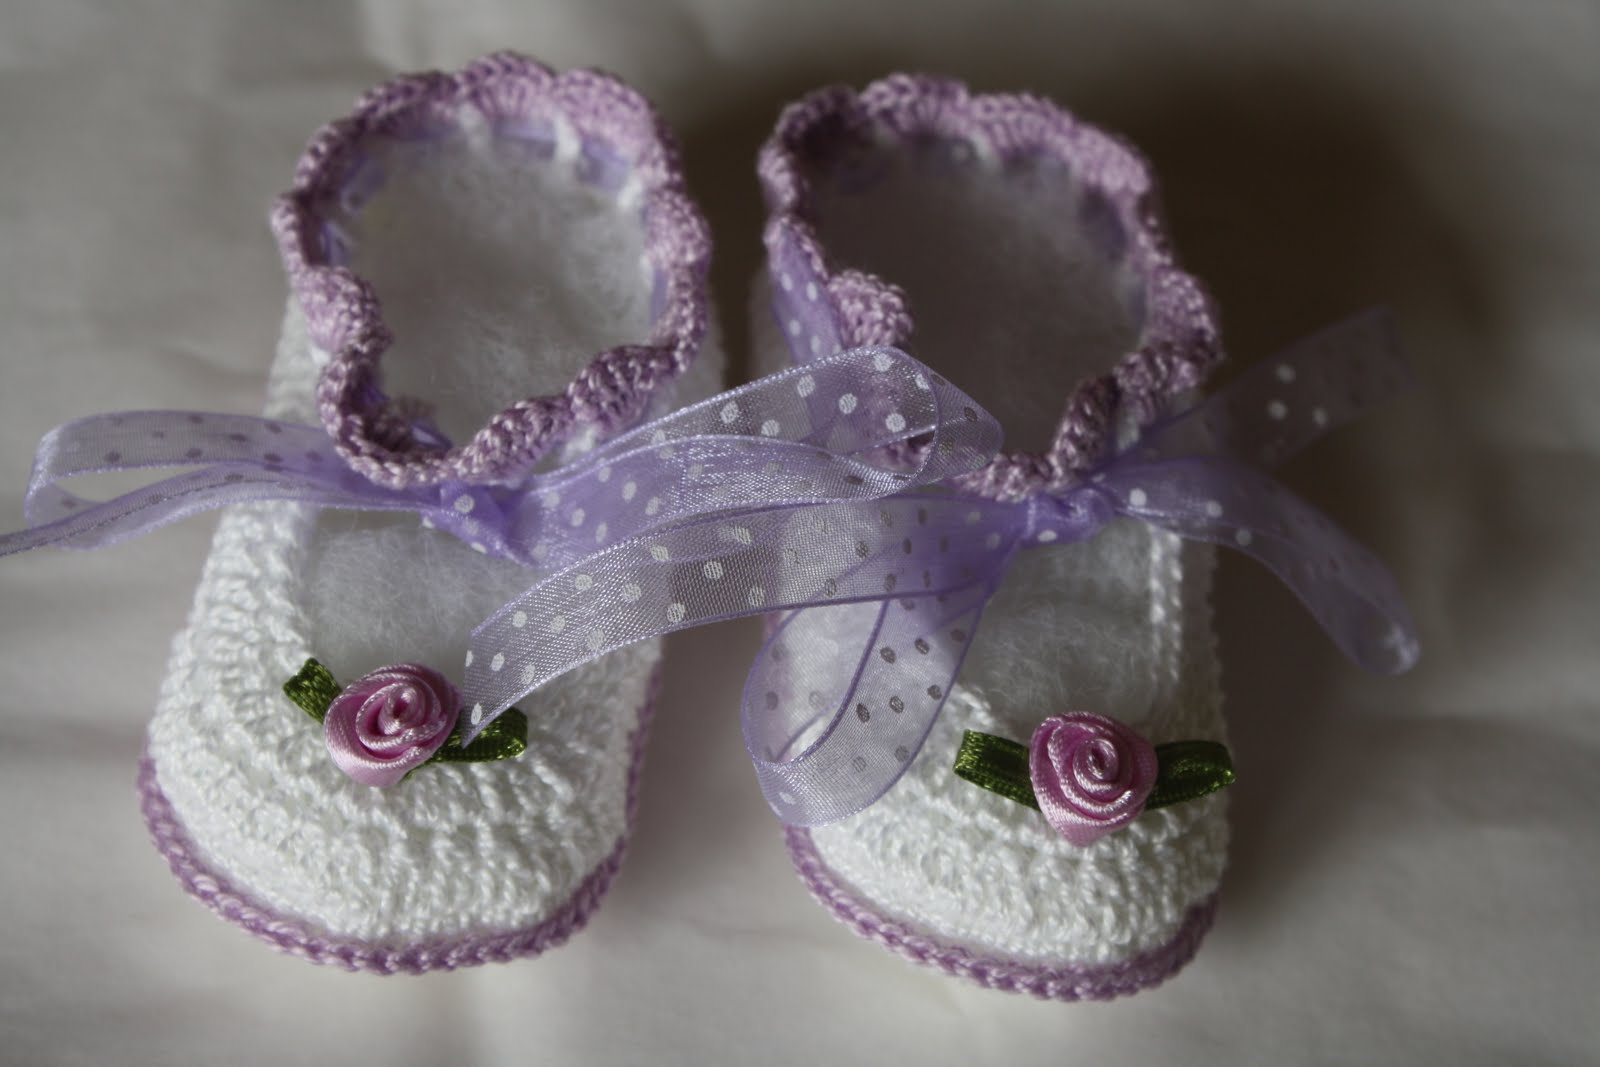 Crochet Tutorial Zapatos Bebe : Zapatitos Bebe Crochet - Crochet Club